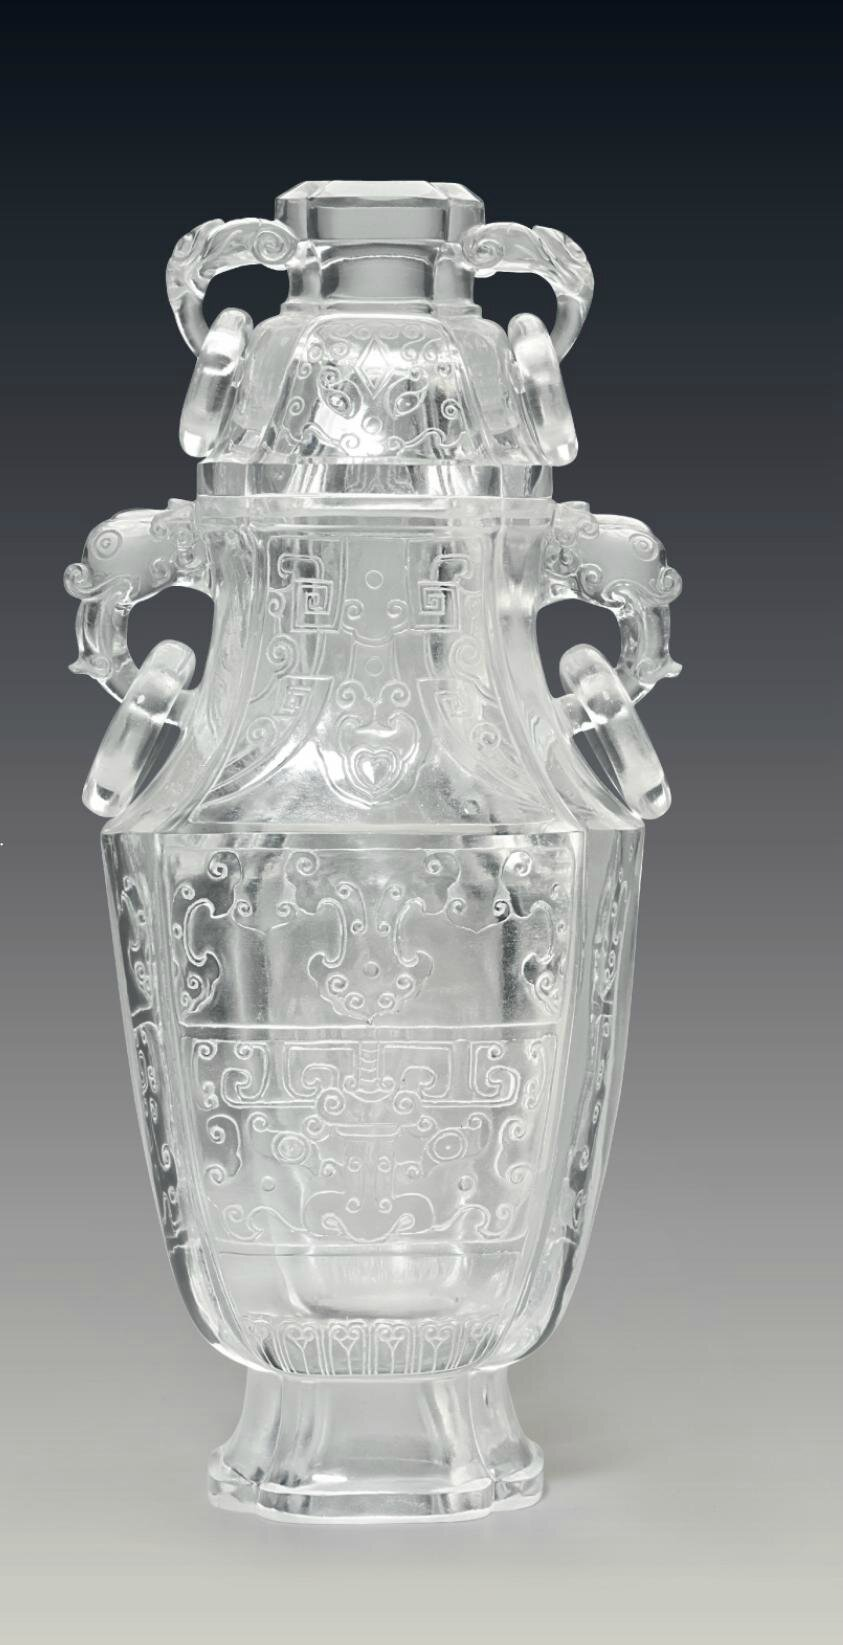 A very rare and unusual large archaistic 'imitation crystal' glass vase and cover, 18th century